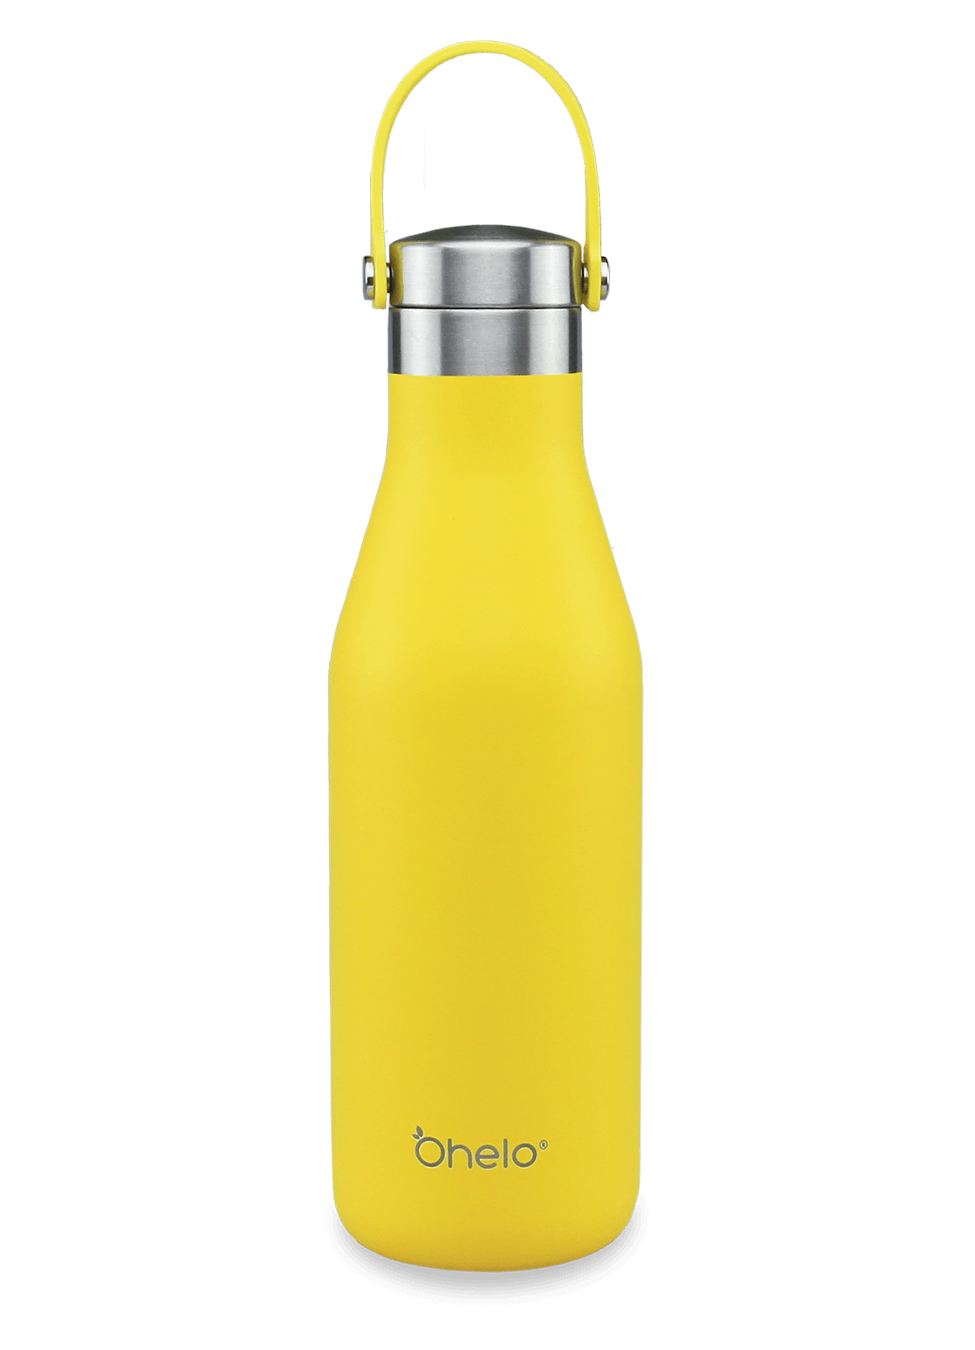 Ohelo eco friendly reusable bottle yellow